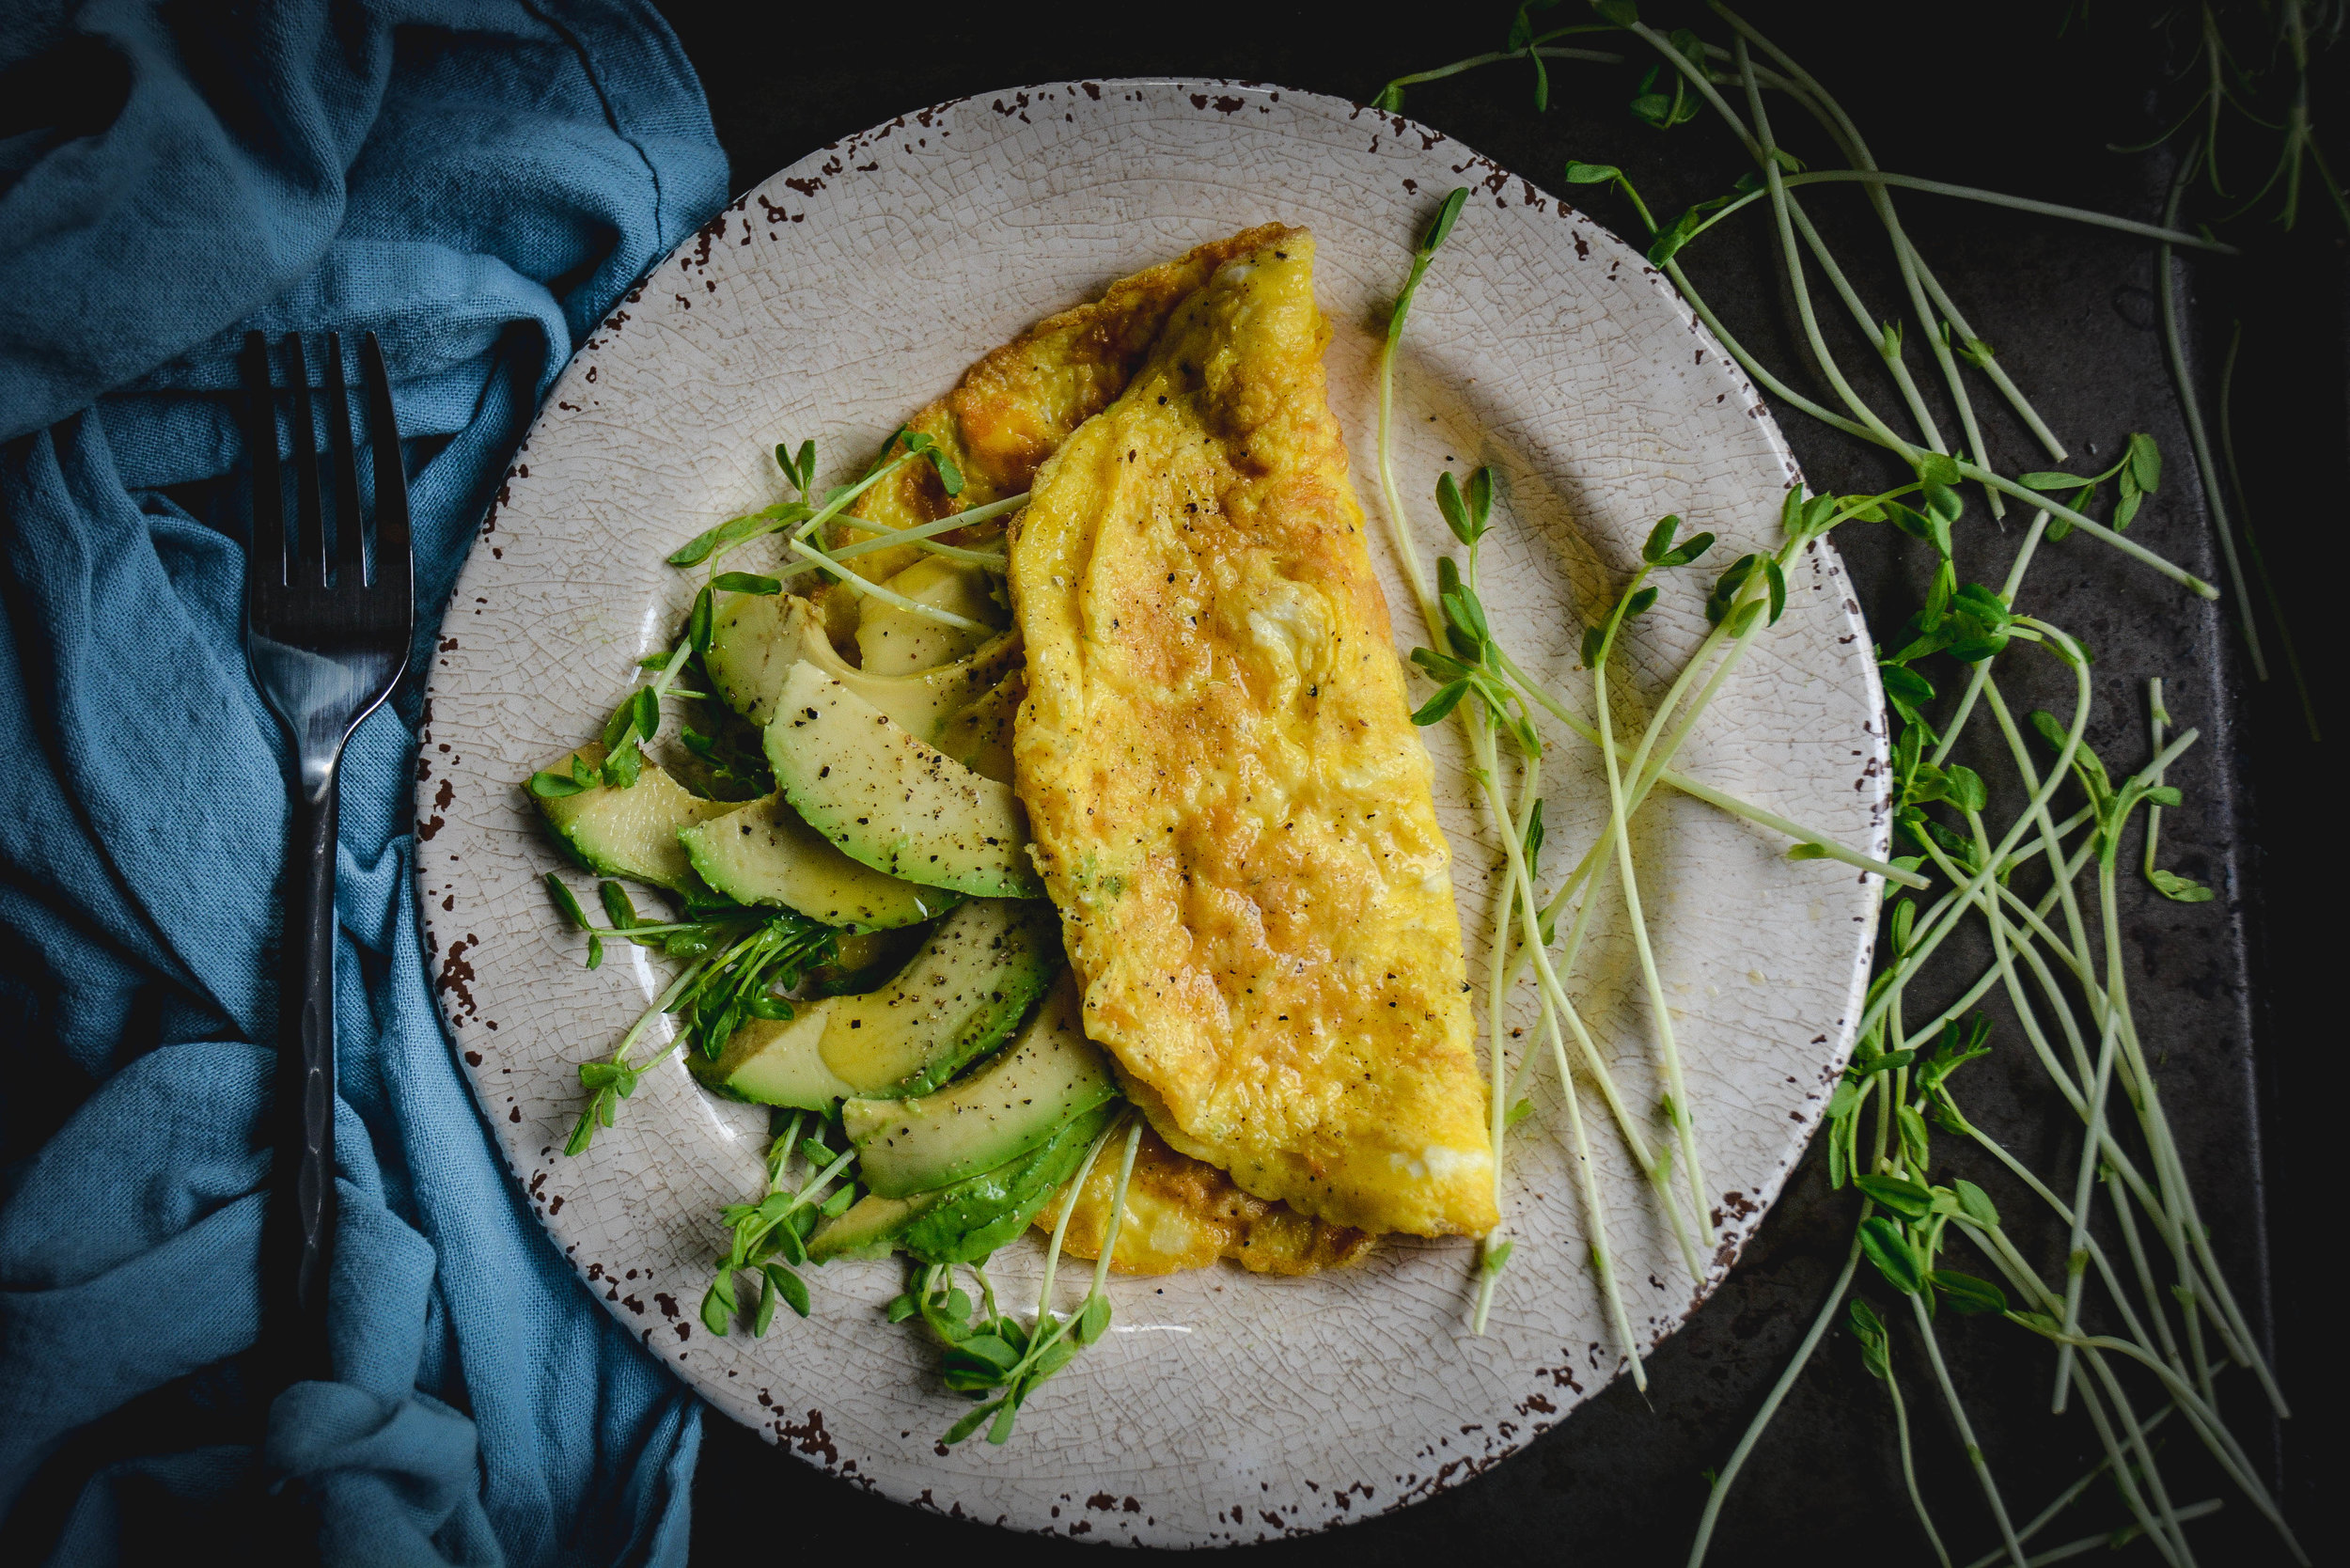 avocado slices in omelette on white plate, greens, napkin and fork